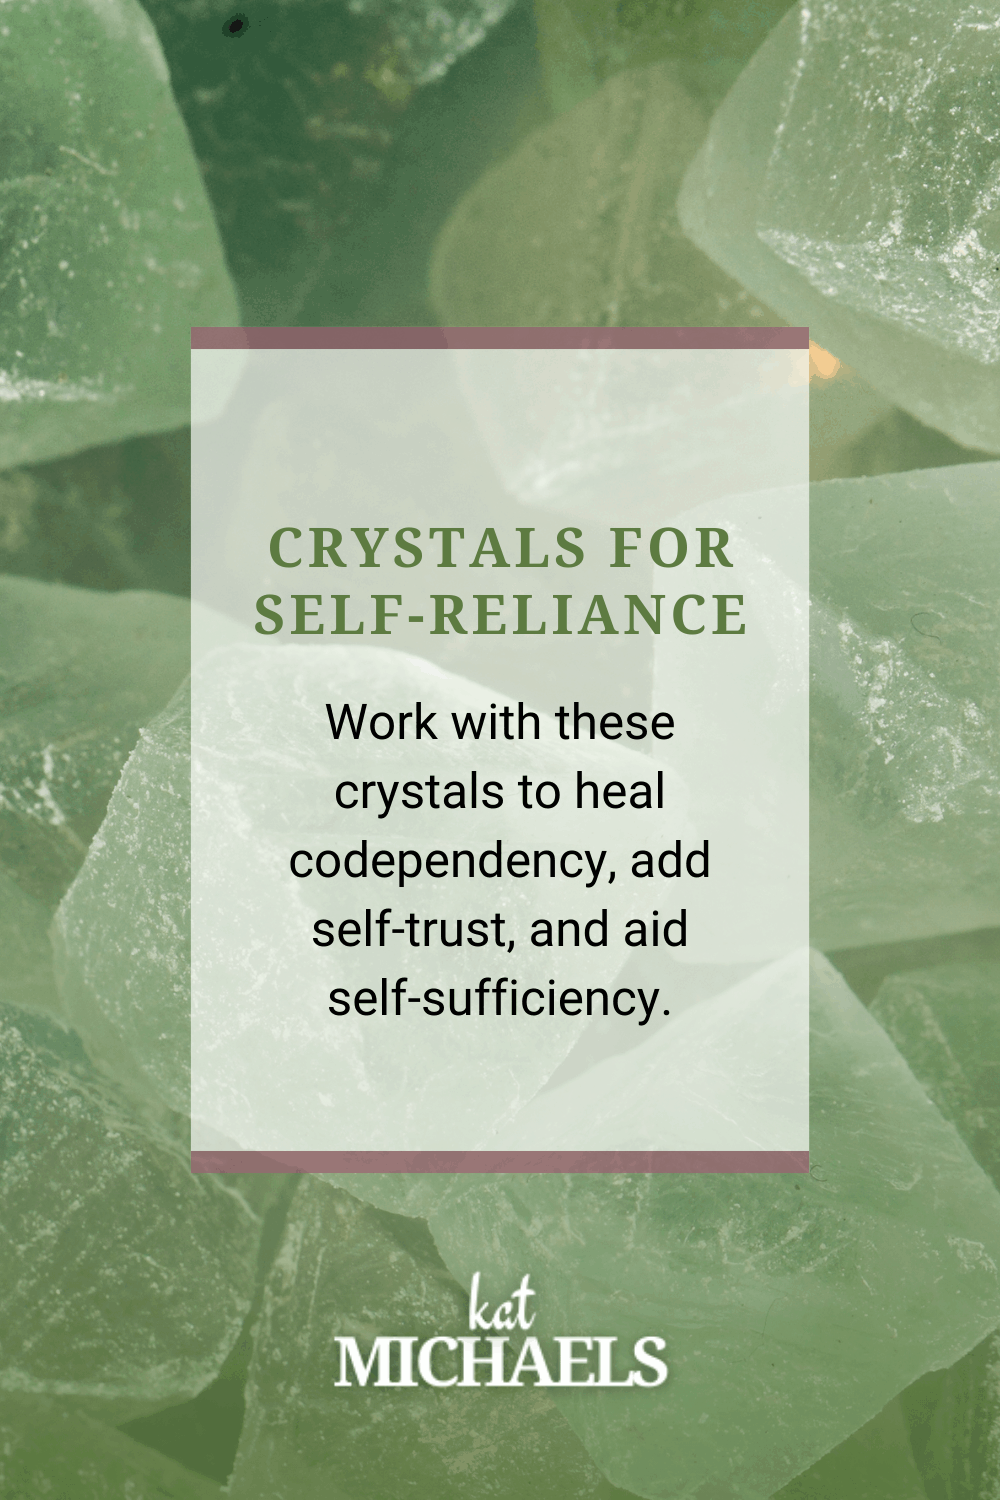 crystals for self-reliance